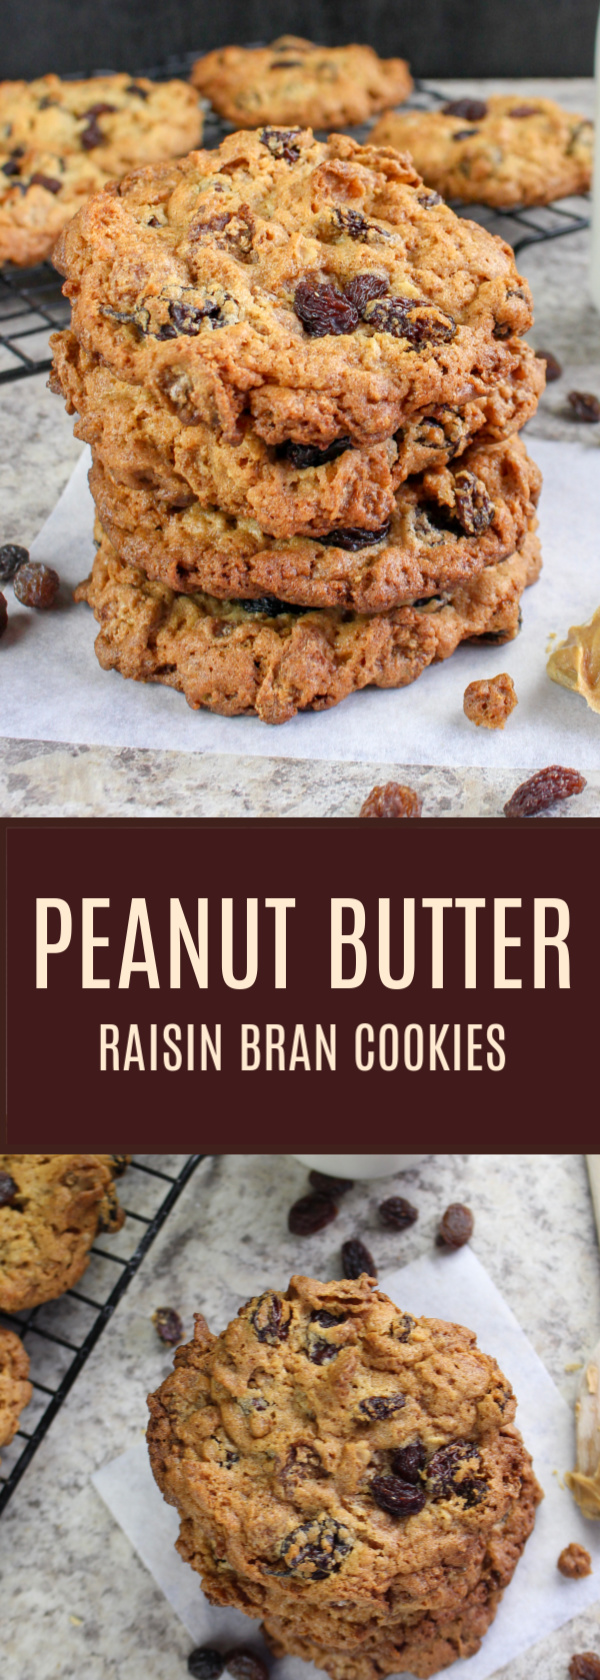 Peanut Butter Raisin Bran Cookies will become your favorite cookie recipe ever! It's an easy breakfast cookie recipe filled with peanut butter, raisins and raisin bran crunch cereal. If you've never had one, you MUST make these! OMG! Irresistible.